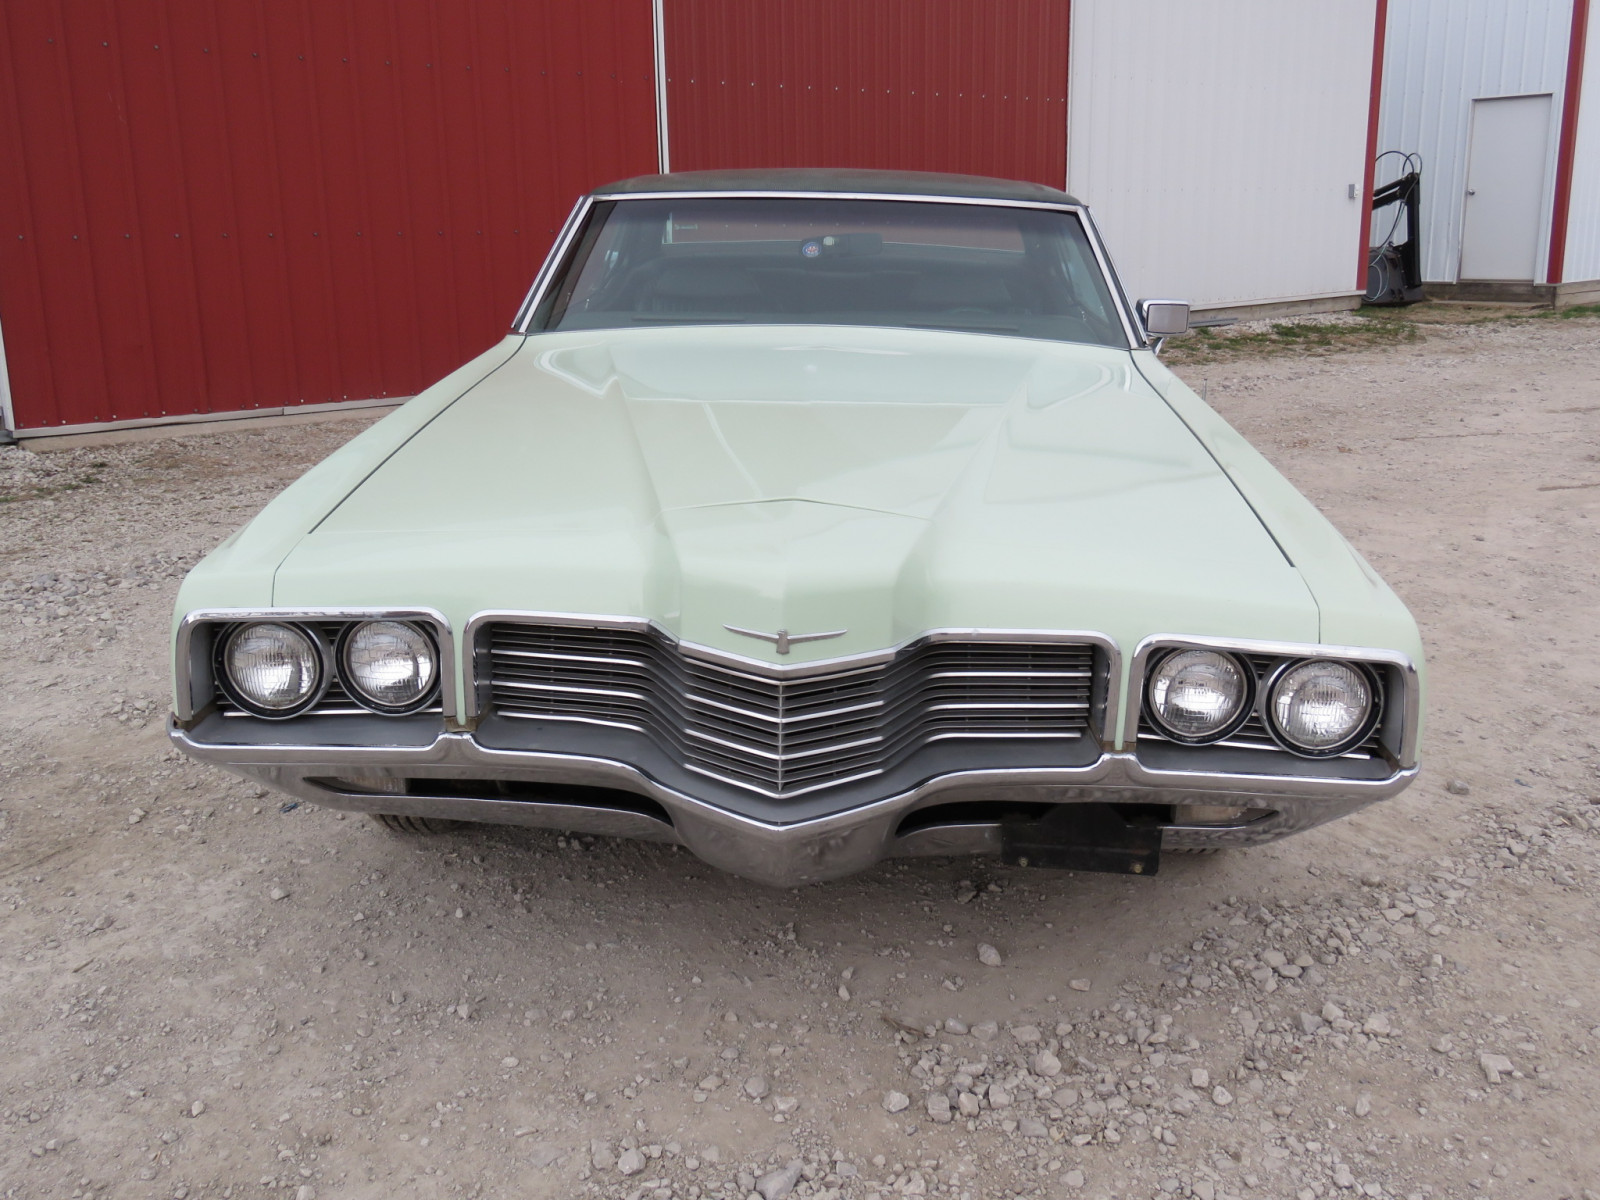 1971 Ford Thunderbird Coupe - Image 2